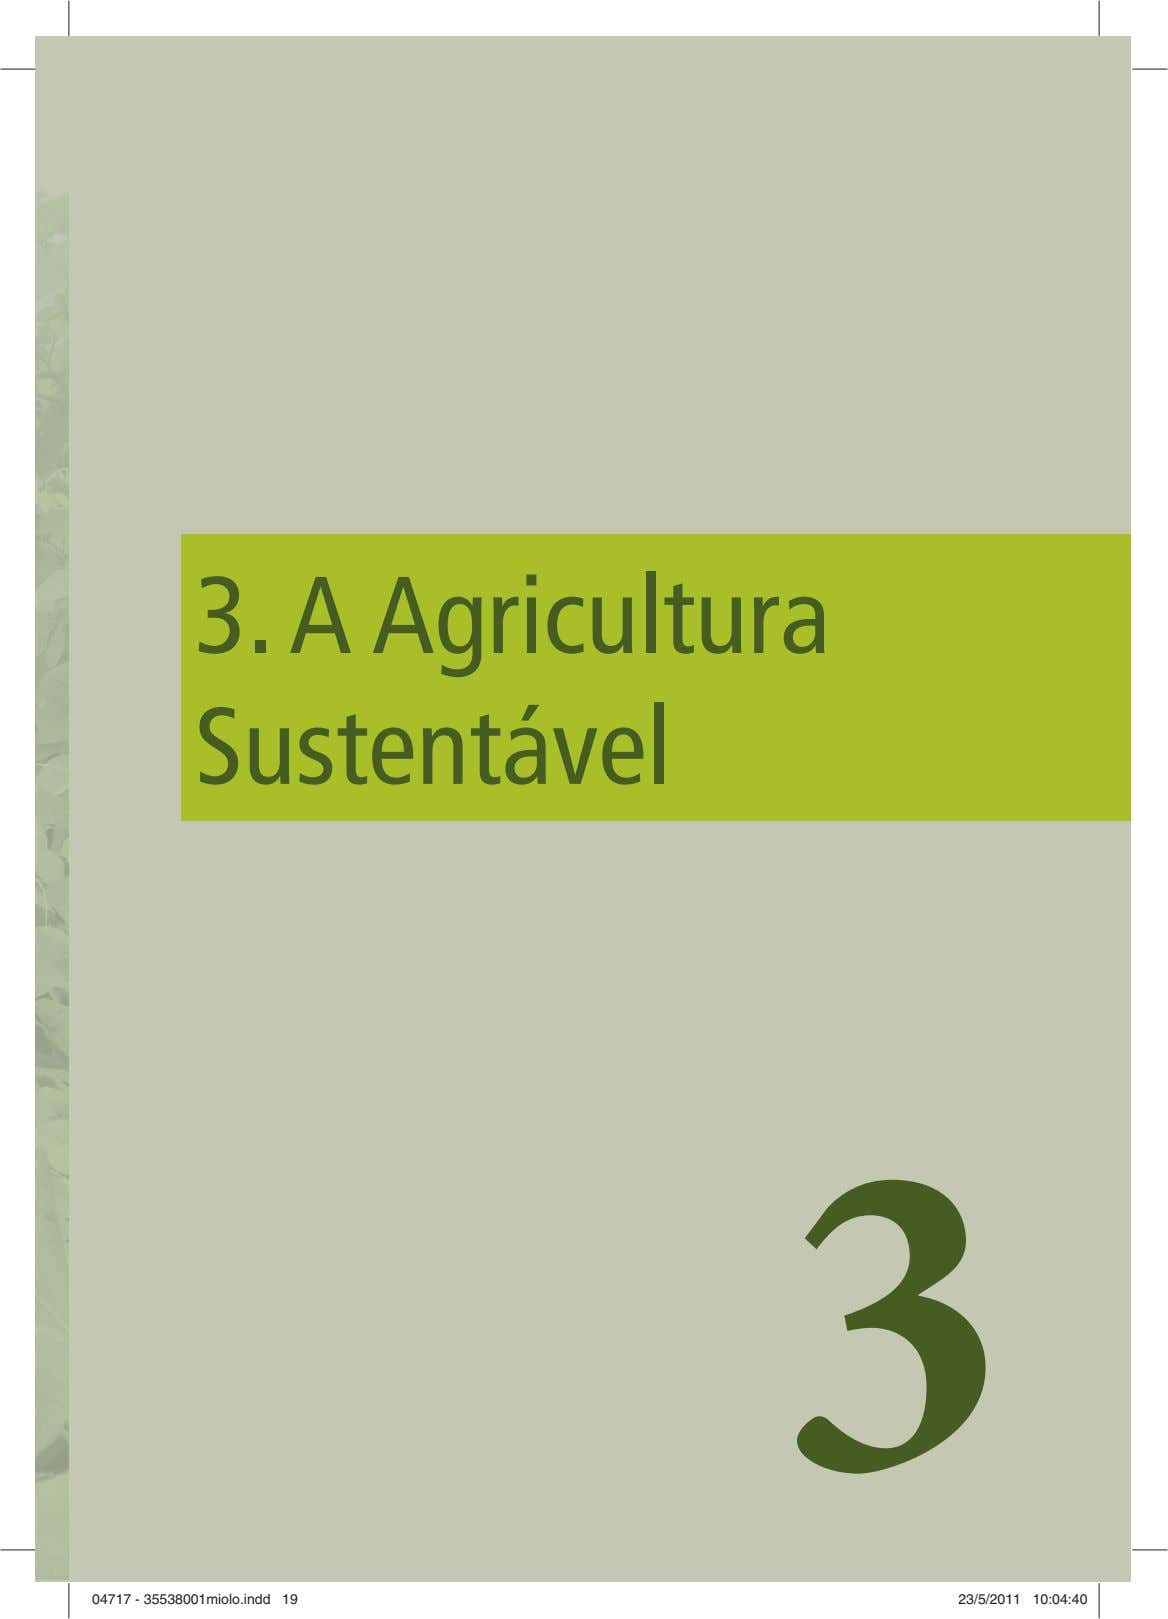 3. A Agricultura Sustentável 3 0047174717 -- 335538001miolo.indd5538001miolo.indd 1199 223/5/20113/5/2011